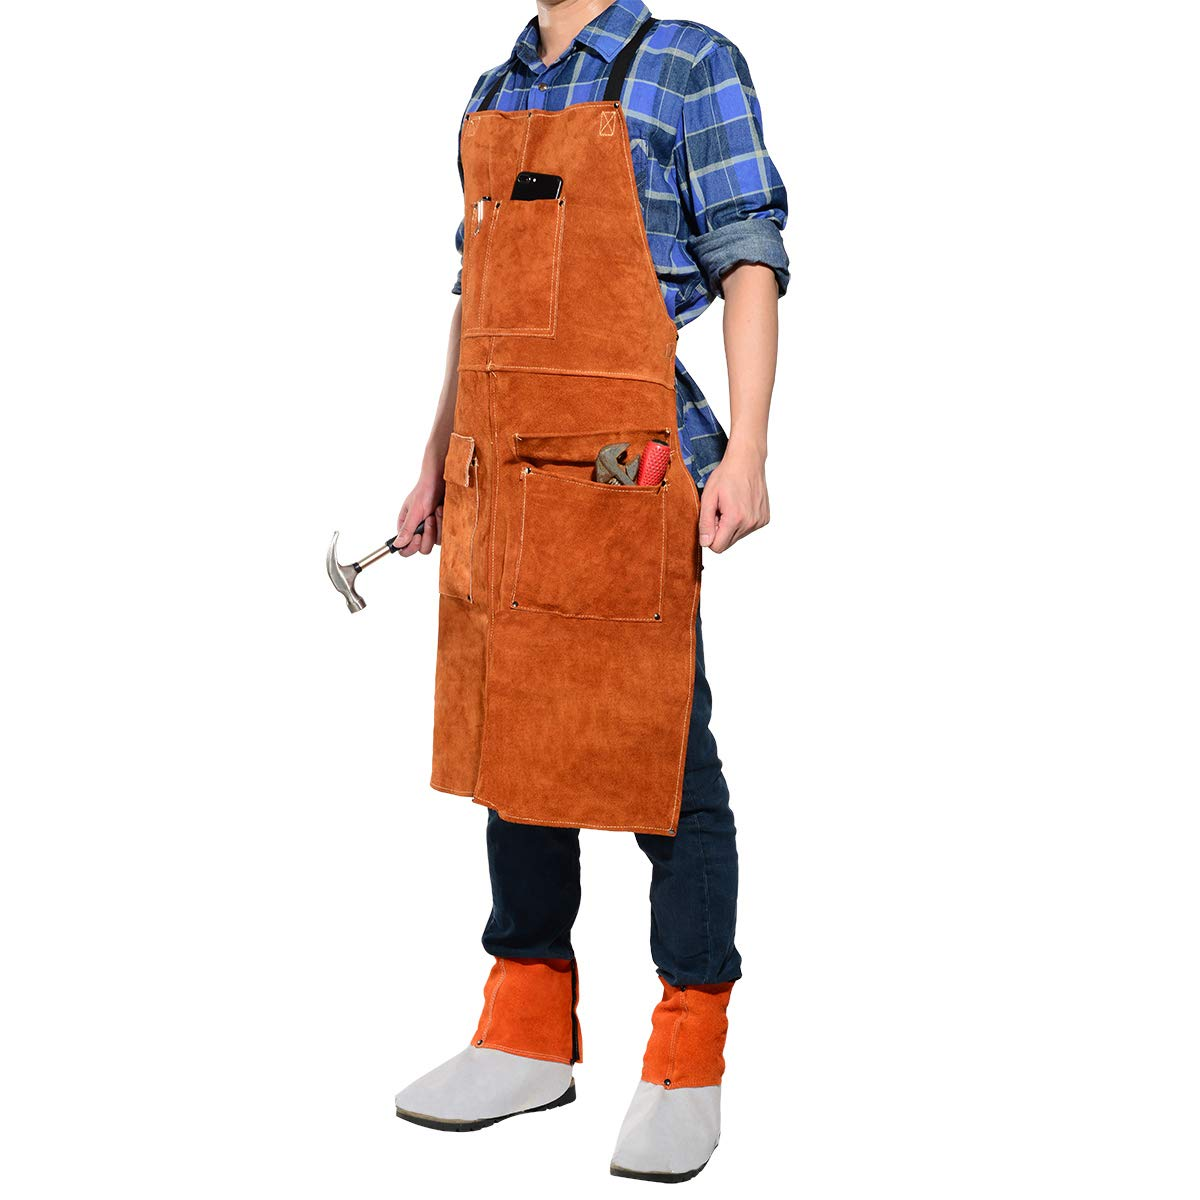 LEASEEK Leather Welding Work Apron - Heat Resistant & Flame Resistant Bib Apron, Flame Retardant Heavy Duty BBQ Apron, Adjustable One Size Fit Most - 24'' X 36'',Brown (Brown)